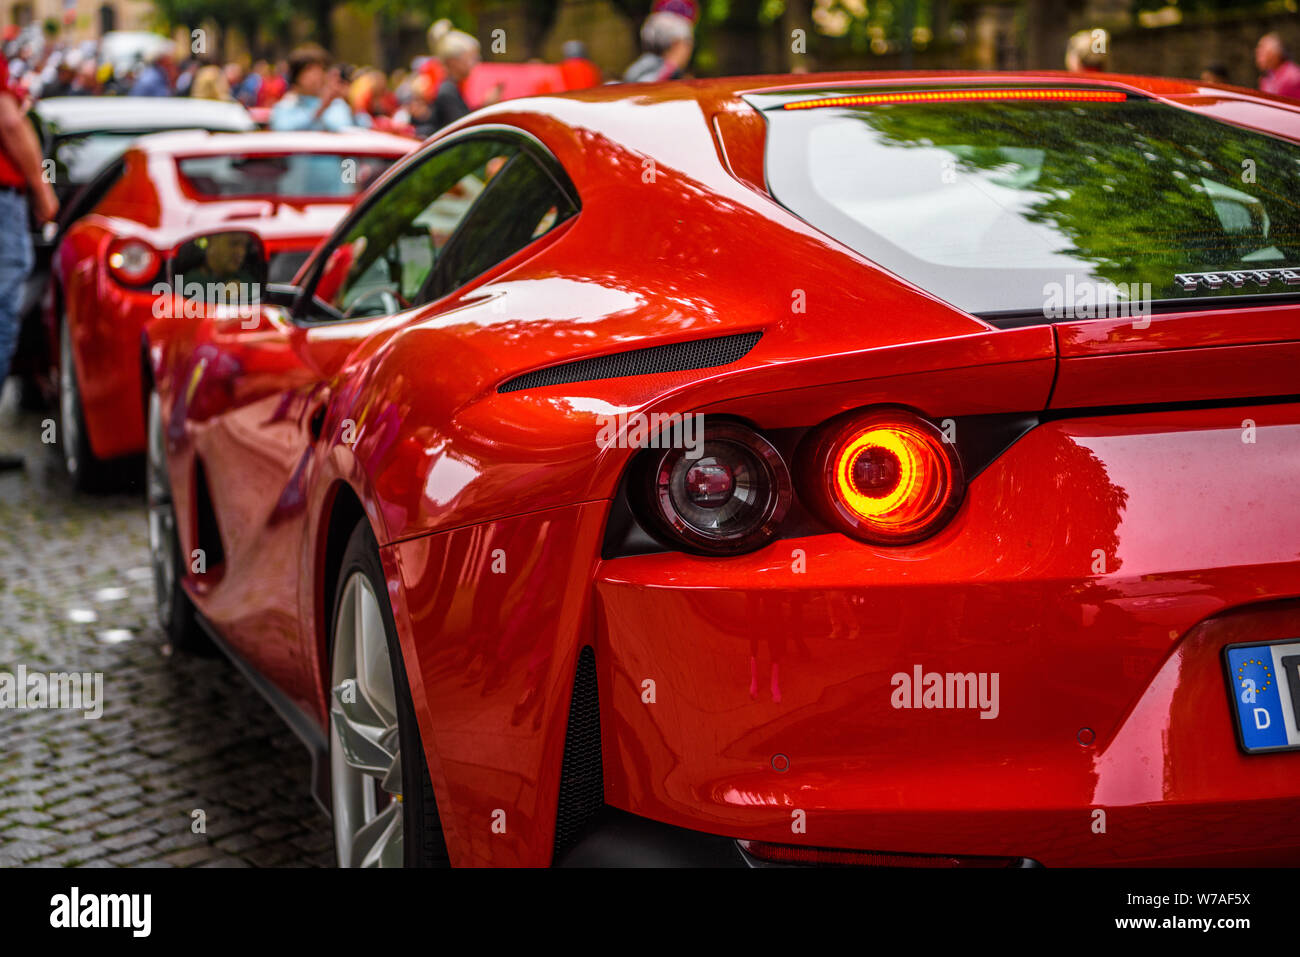 Germany Fulda Jul 2019 Red Ferrari 812 Superfast Type F152m Is A Front Mid Engine Rear Wheel Drive Grand Tourer Produced By Italian Sports Car Ma Stock Photo Alamy